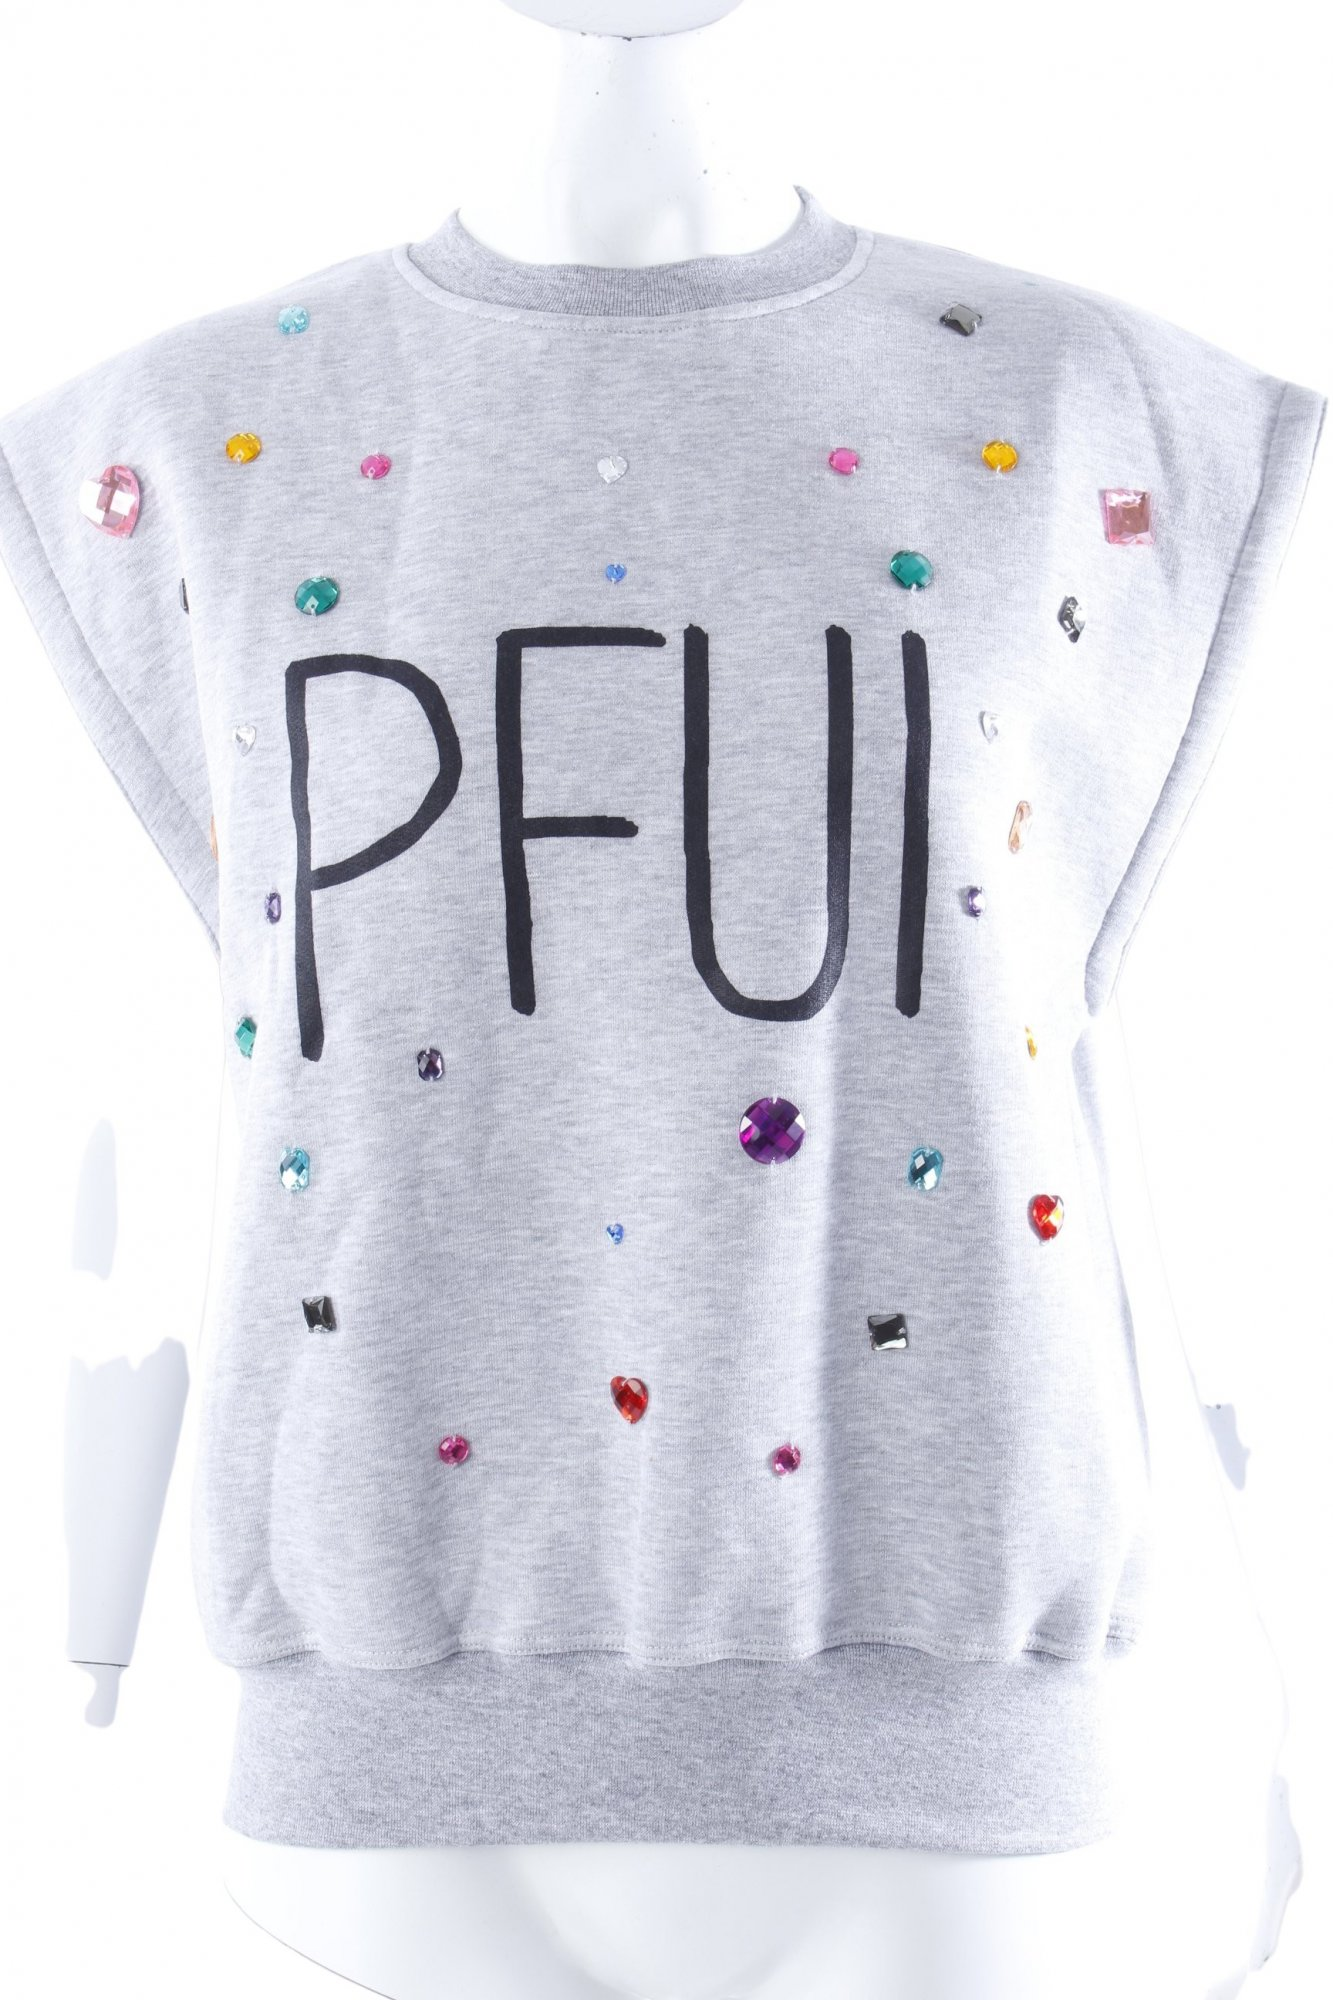 I The Women's Shit senza Sweatshirt maniche Grau gr Sweat De pfui 38 6f0q6